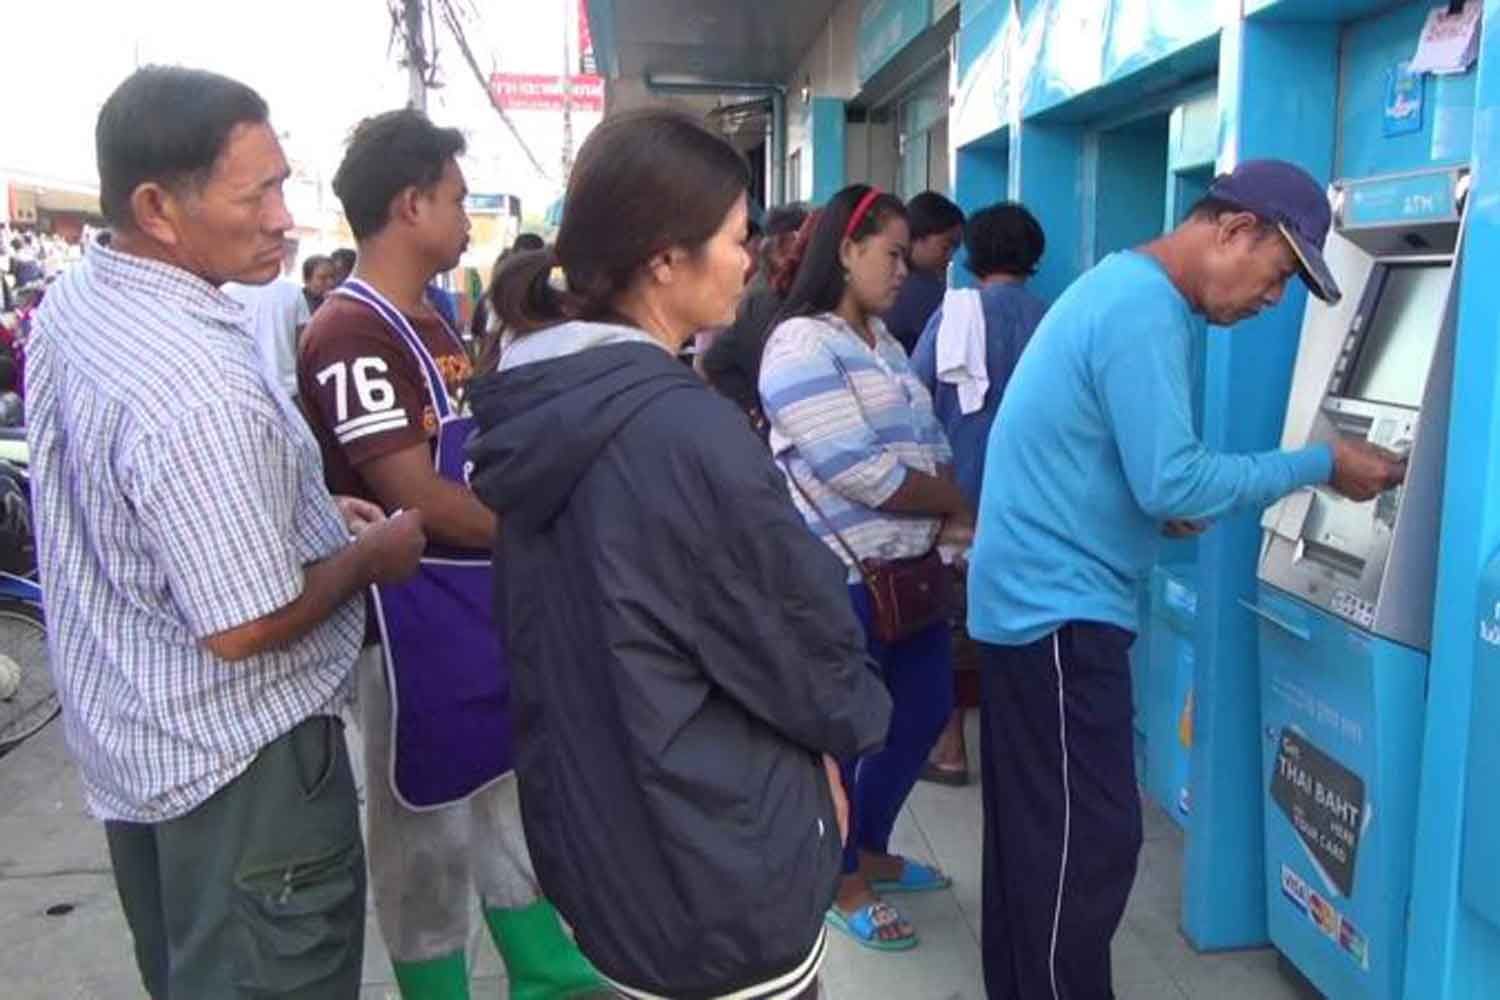 Holders of state welfare cards queue to withdraw money from ATMs in Buri Ram province. The government will increase its financial assistance, to inject more money into the economy. (File photo: Surachai Piragsa)